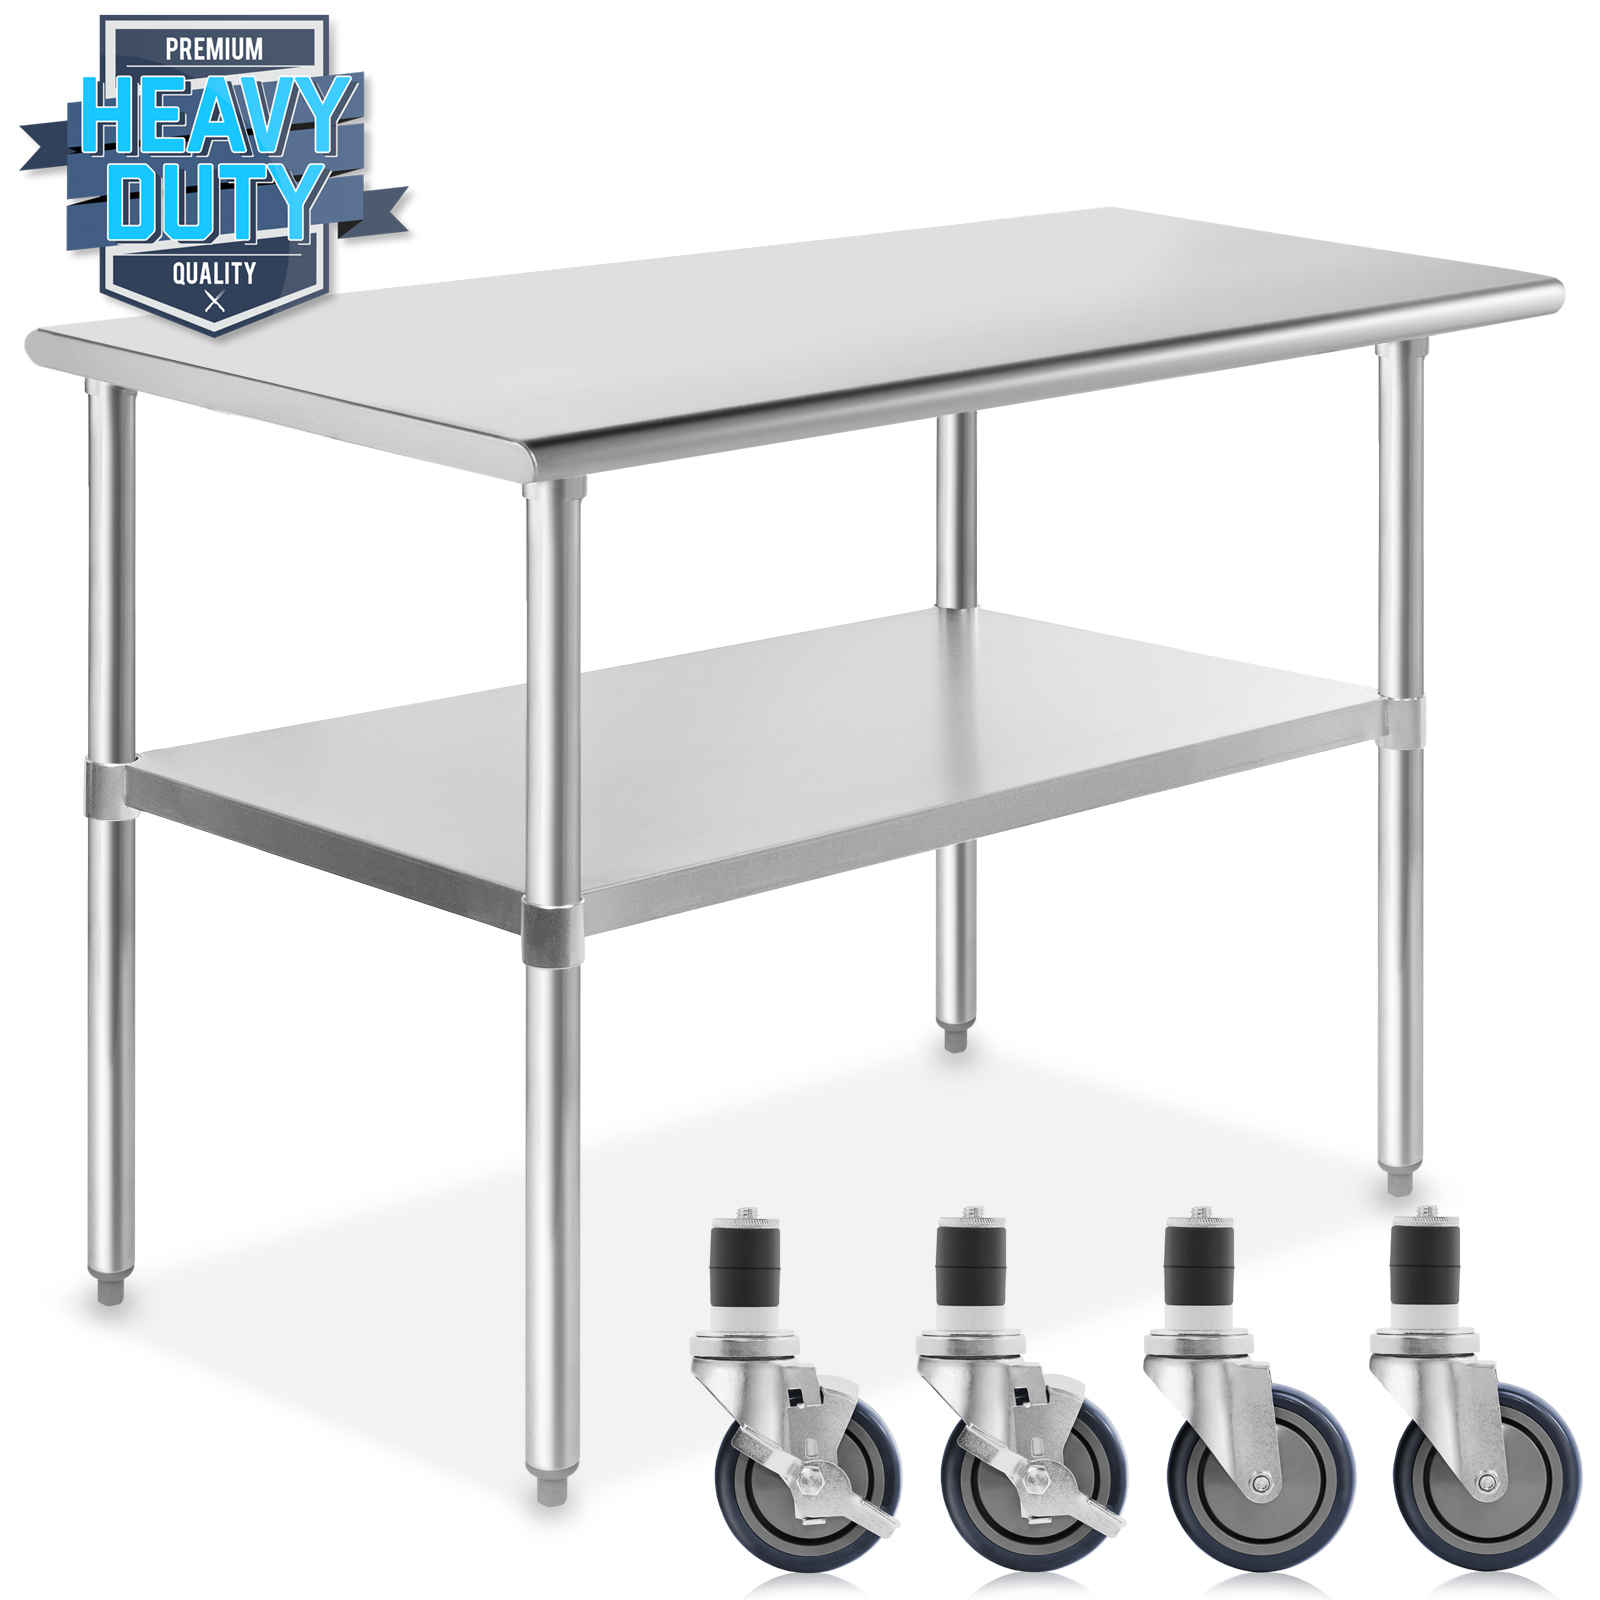 Wheels x 24 in. - 30 in GRIDMANN NSF Stainless Steel Commercial Kitchen Prep /& Work Table w// 4 Casters